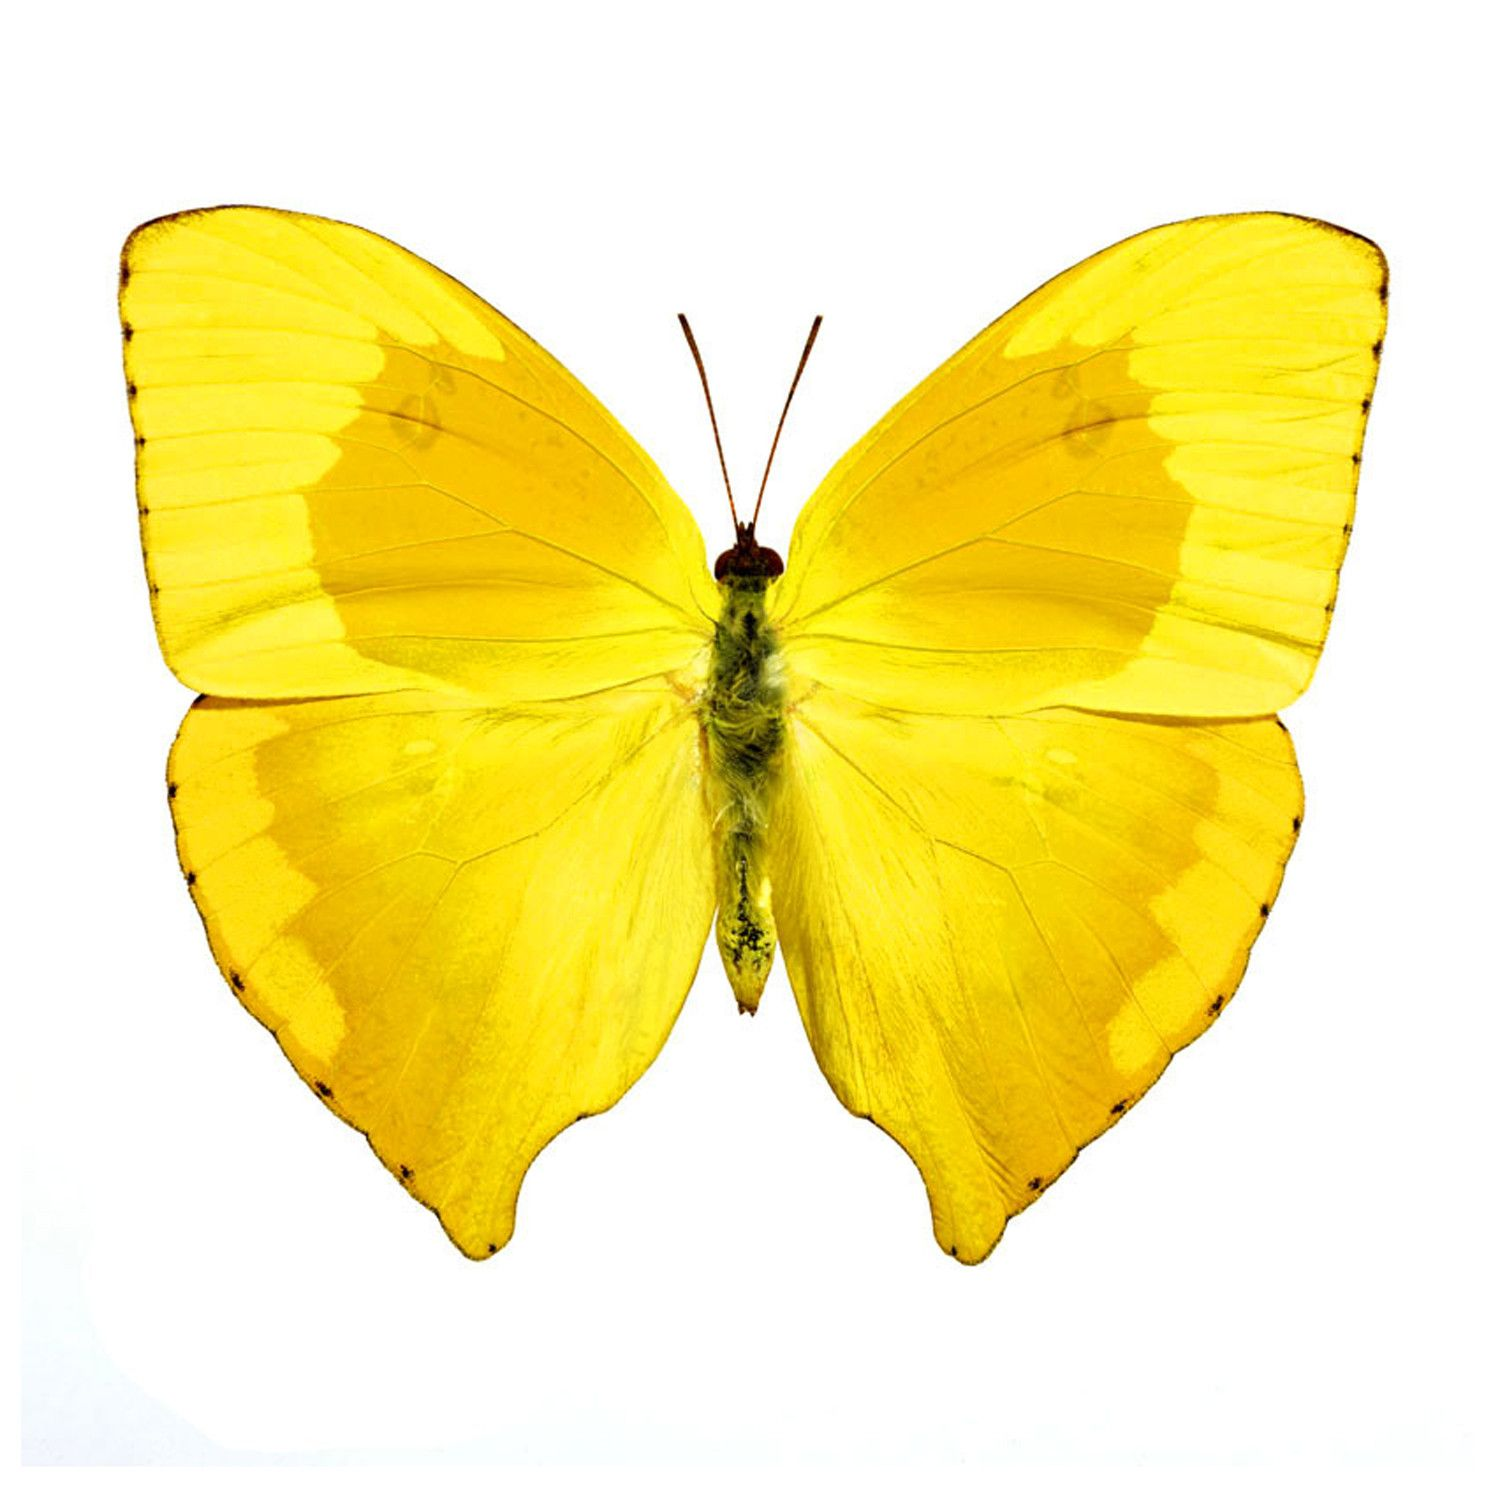 WallflowerOnline decals | Home | Pinterest | Butterfly, Tattoo and ...